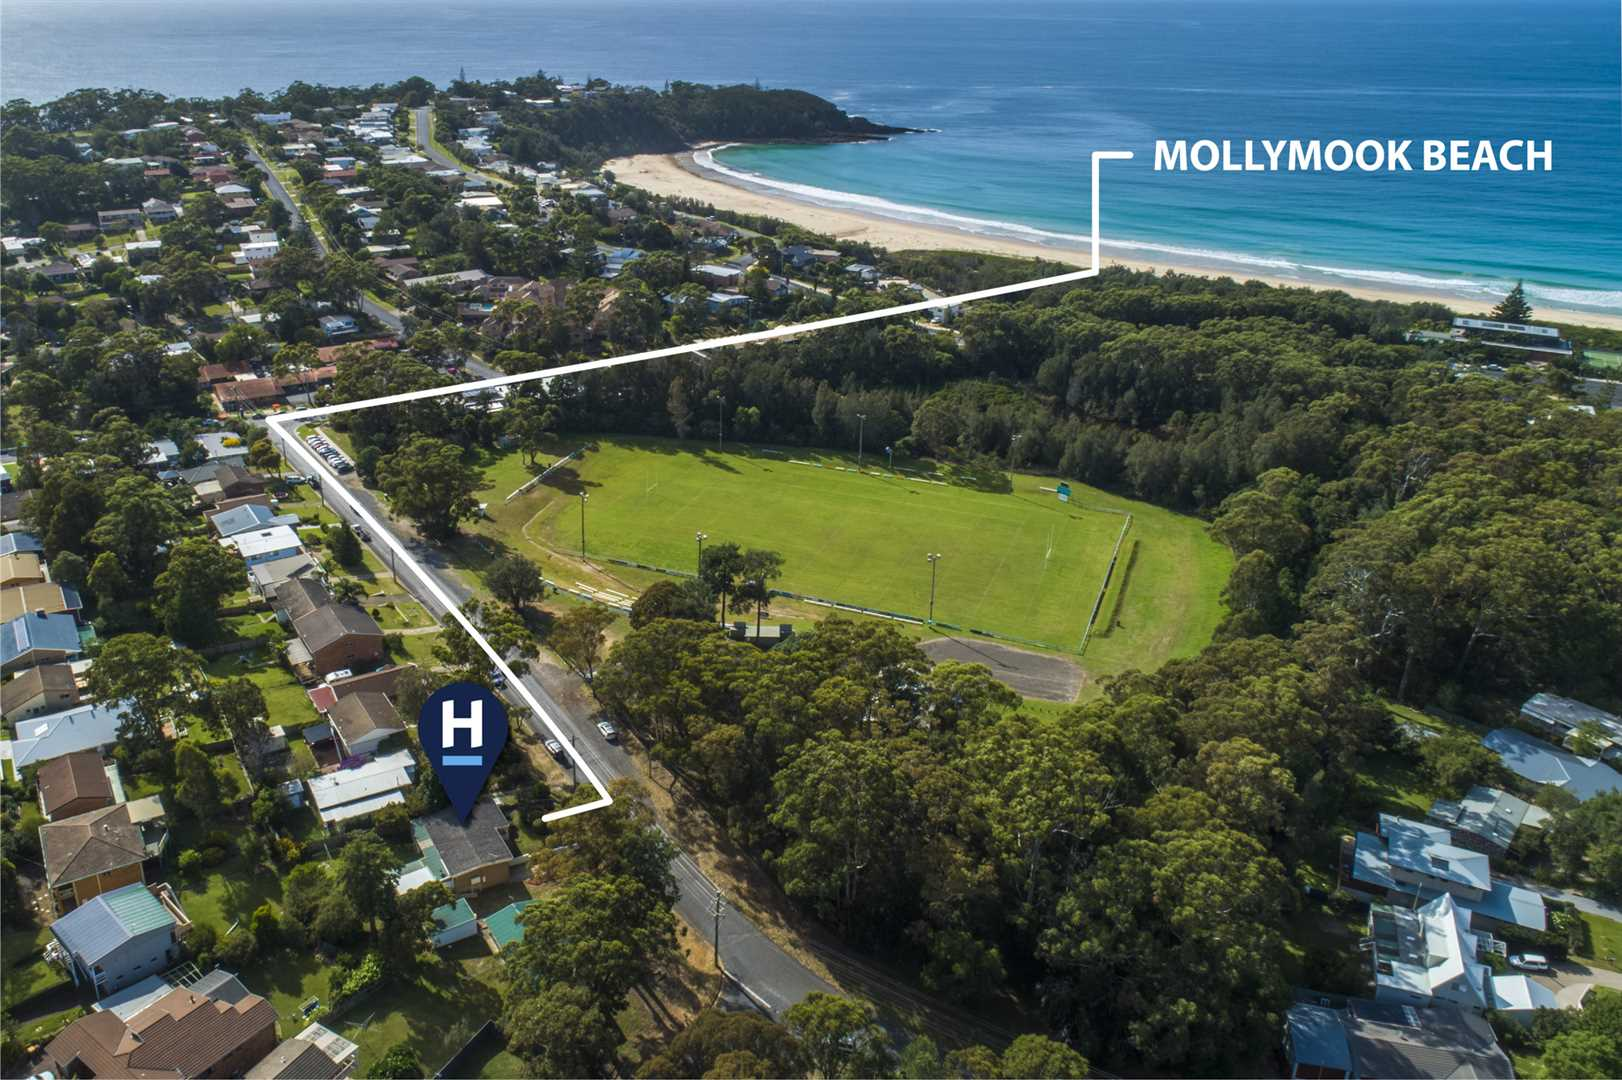 Aerial Shot of Mollymook